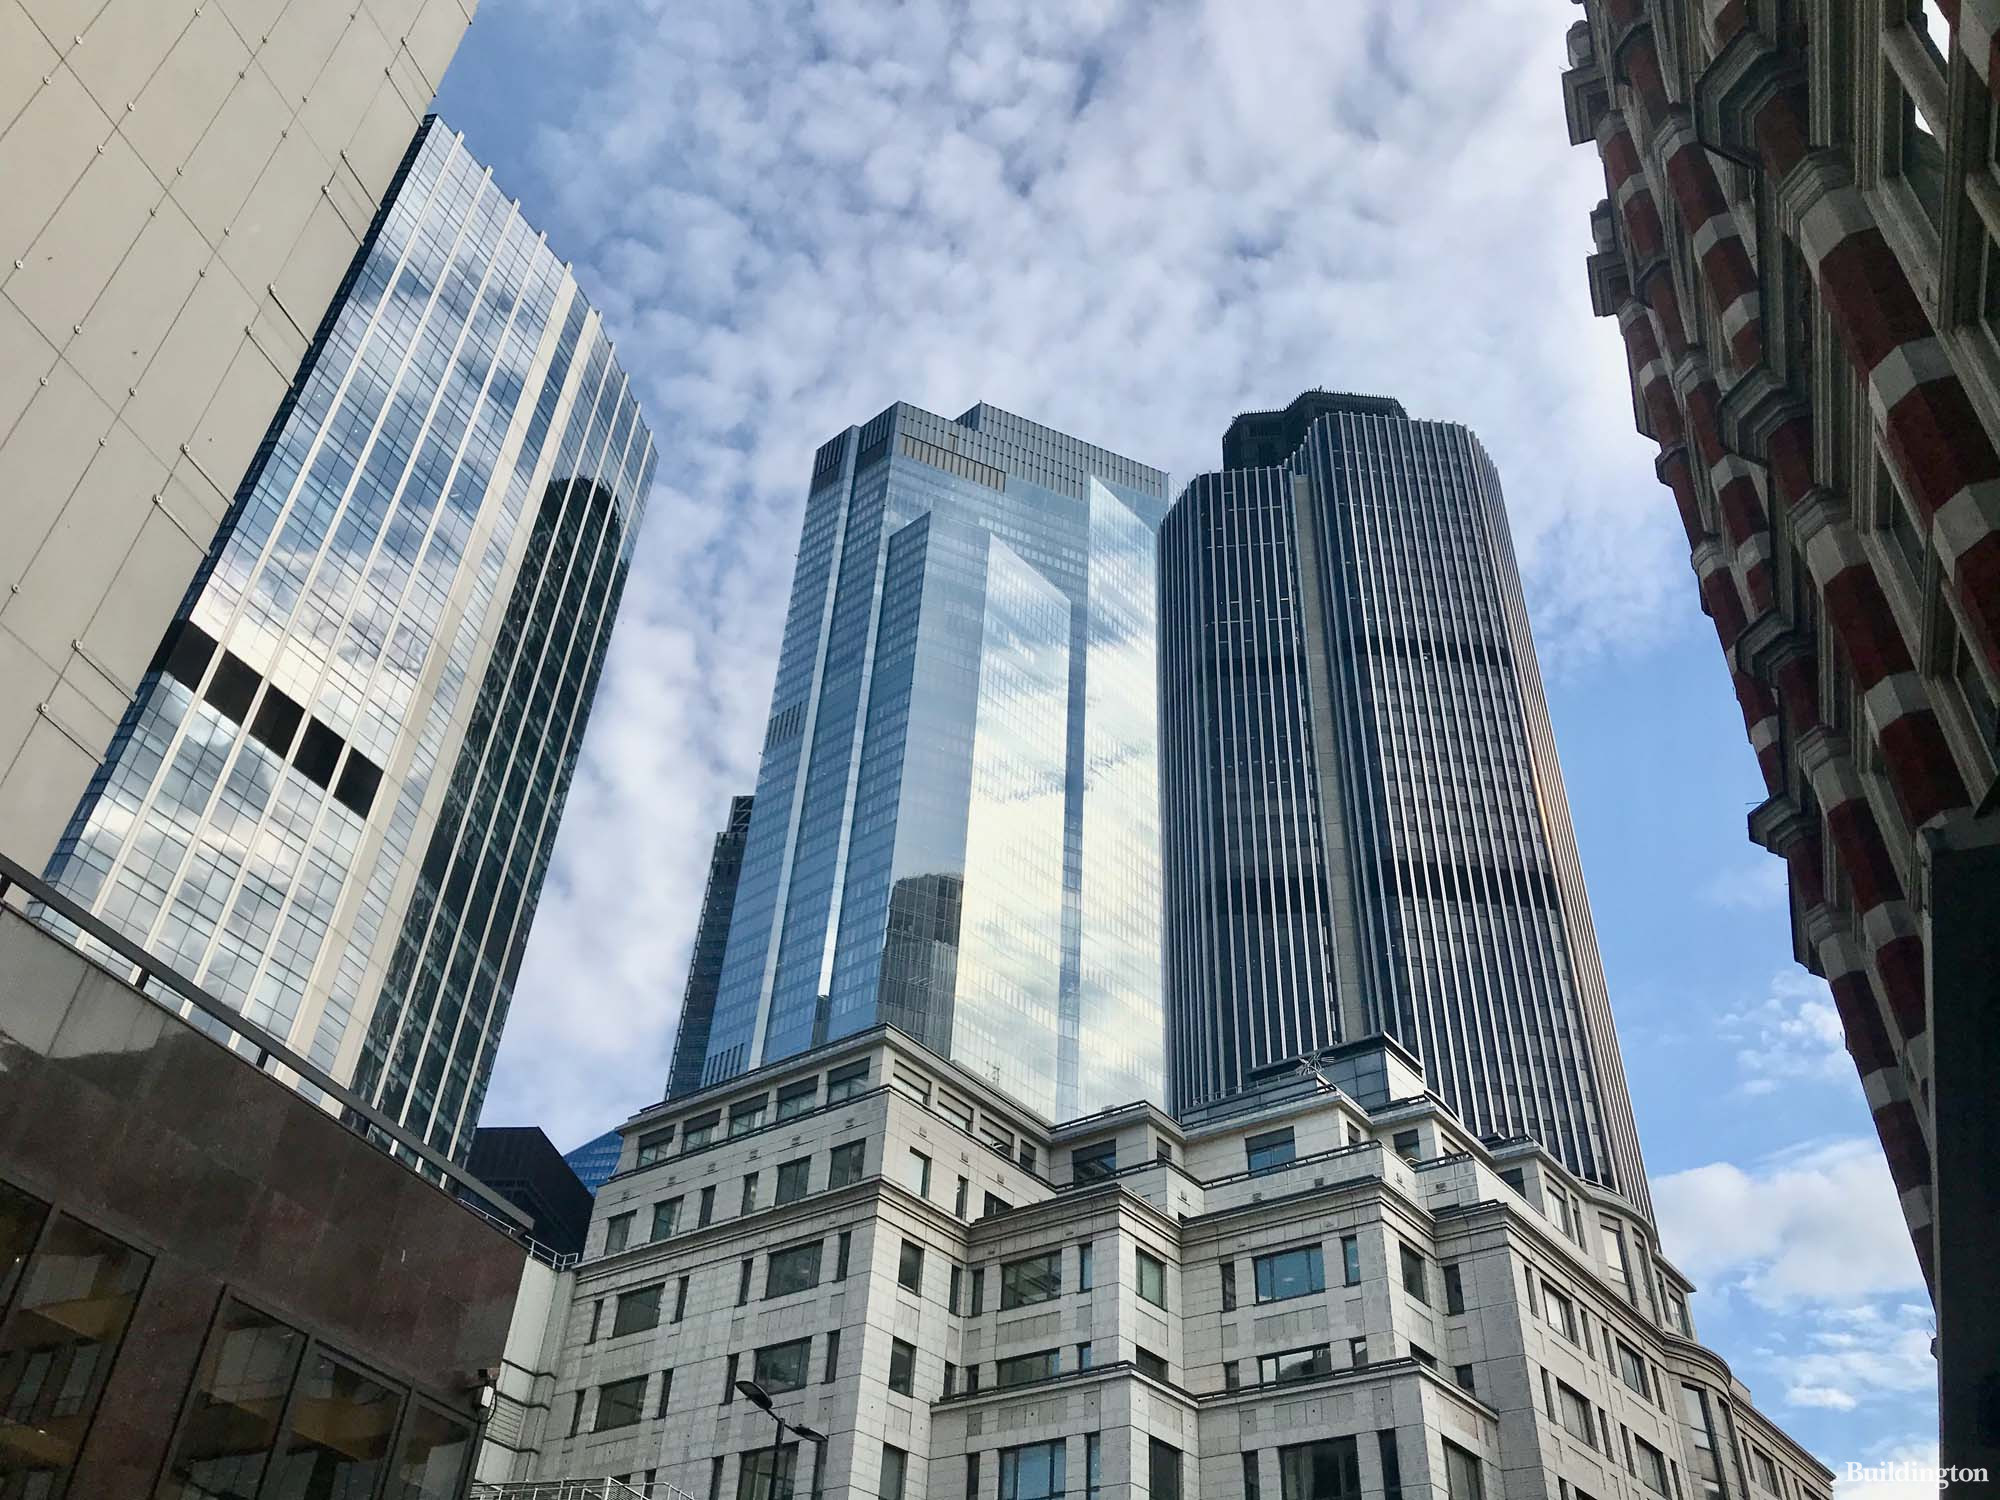 99 Bishopsgate, 22 Bishopsgate and Tower 42 from Old Broad Street in the City of London EC2.